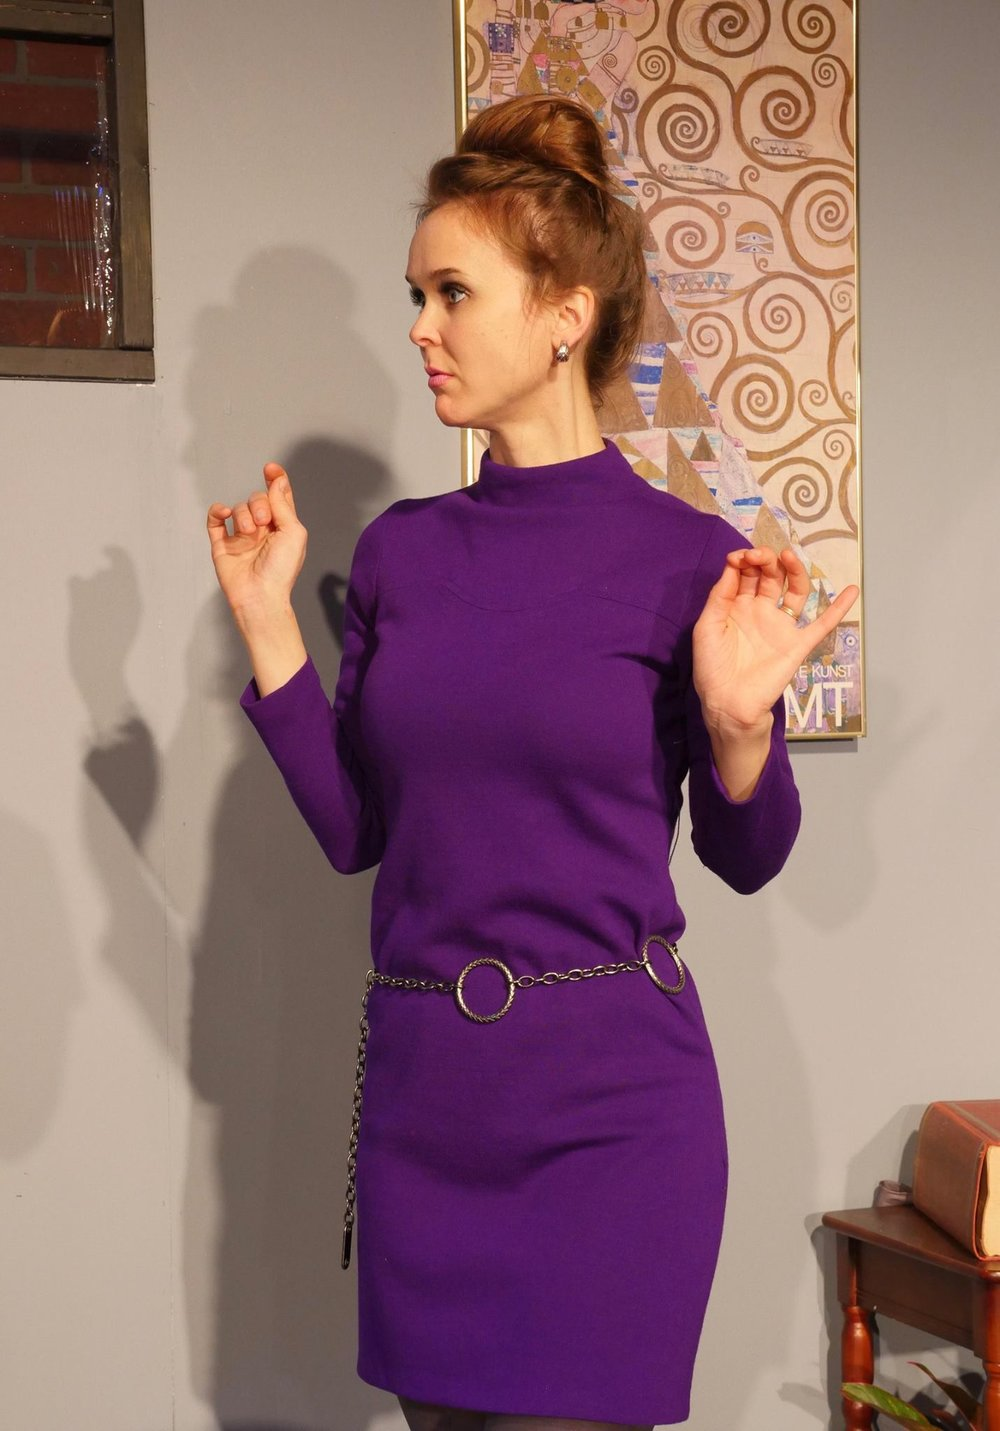 Barefoot Still - Purple Dress 1.jpg